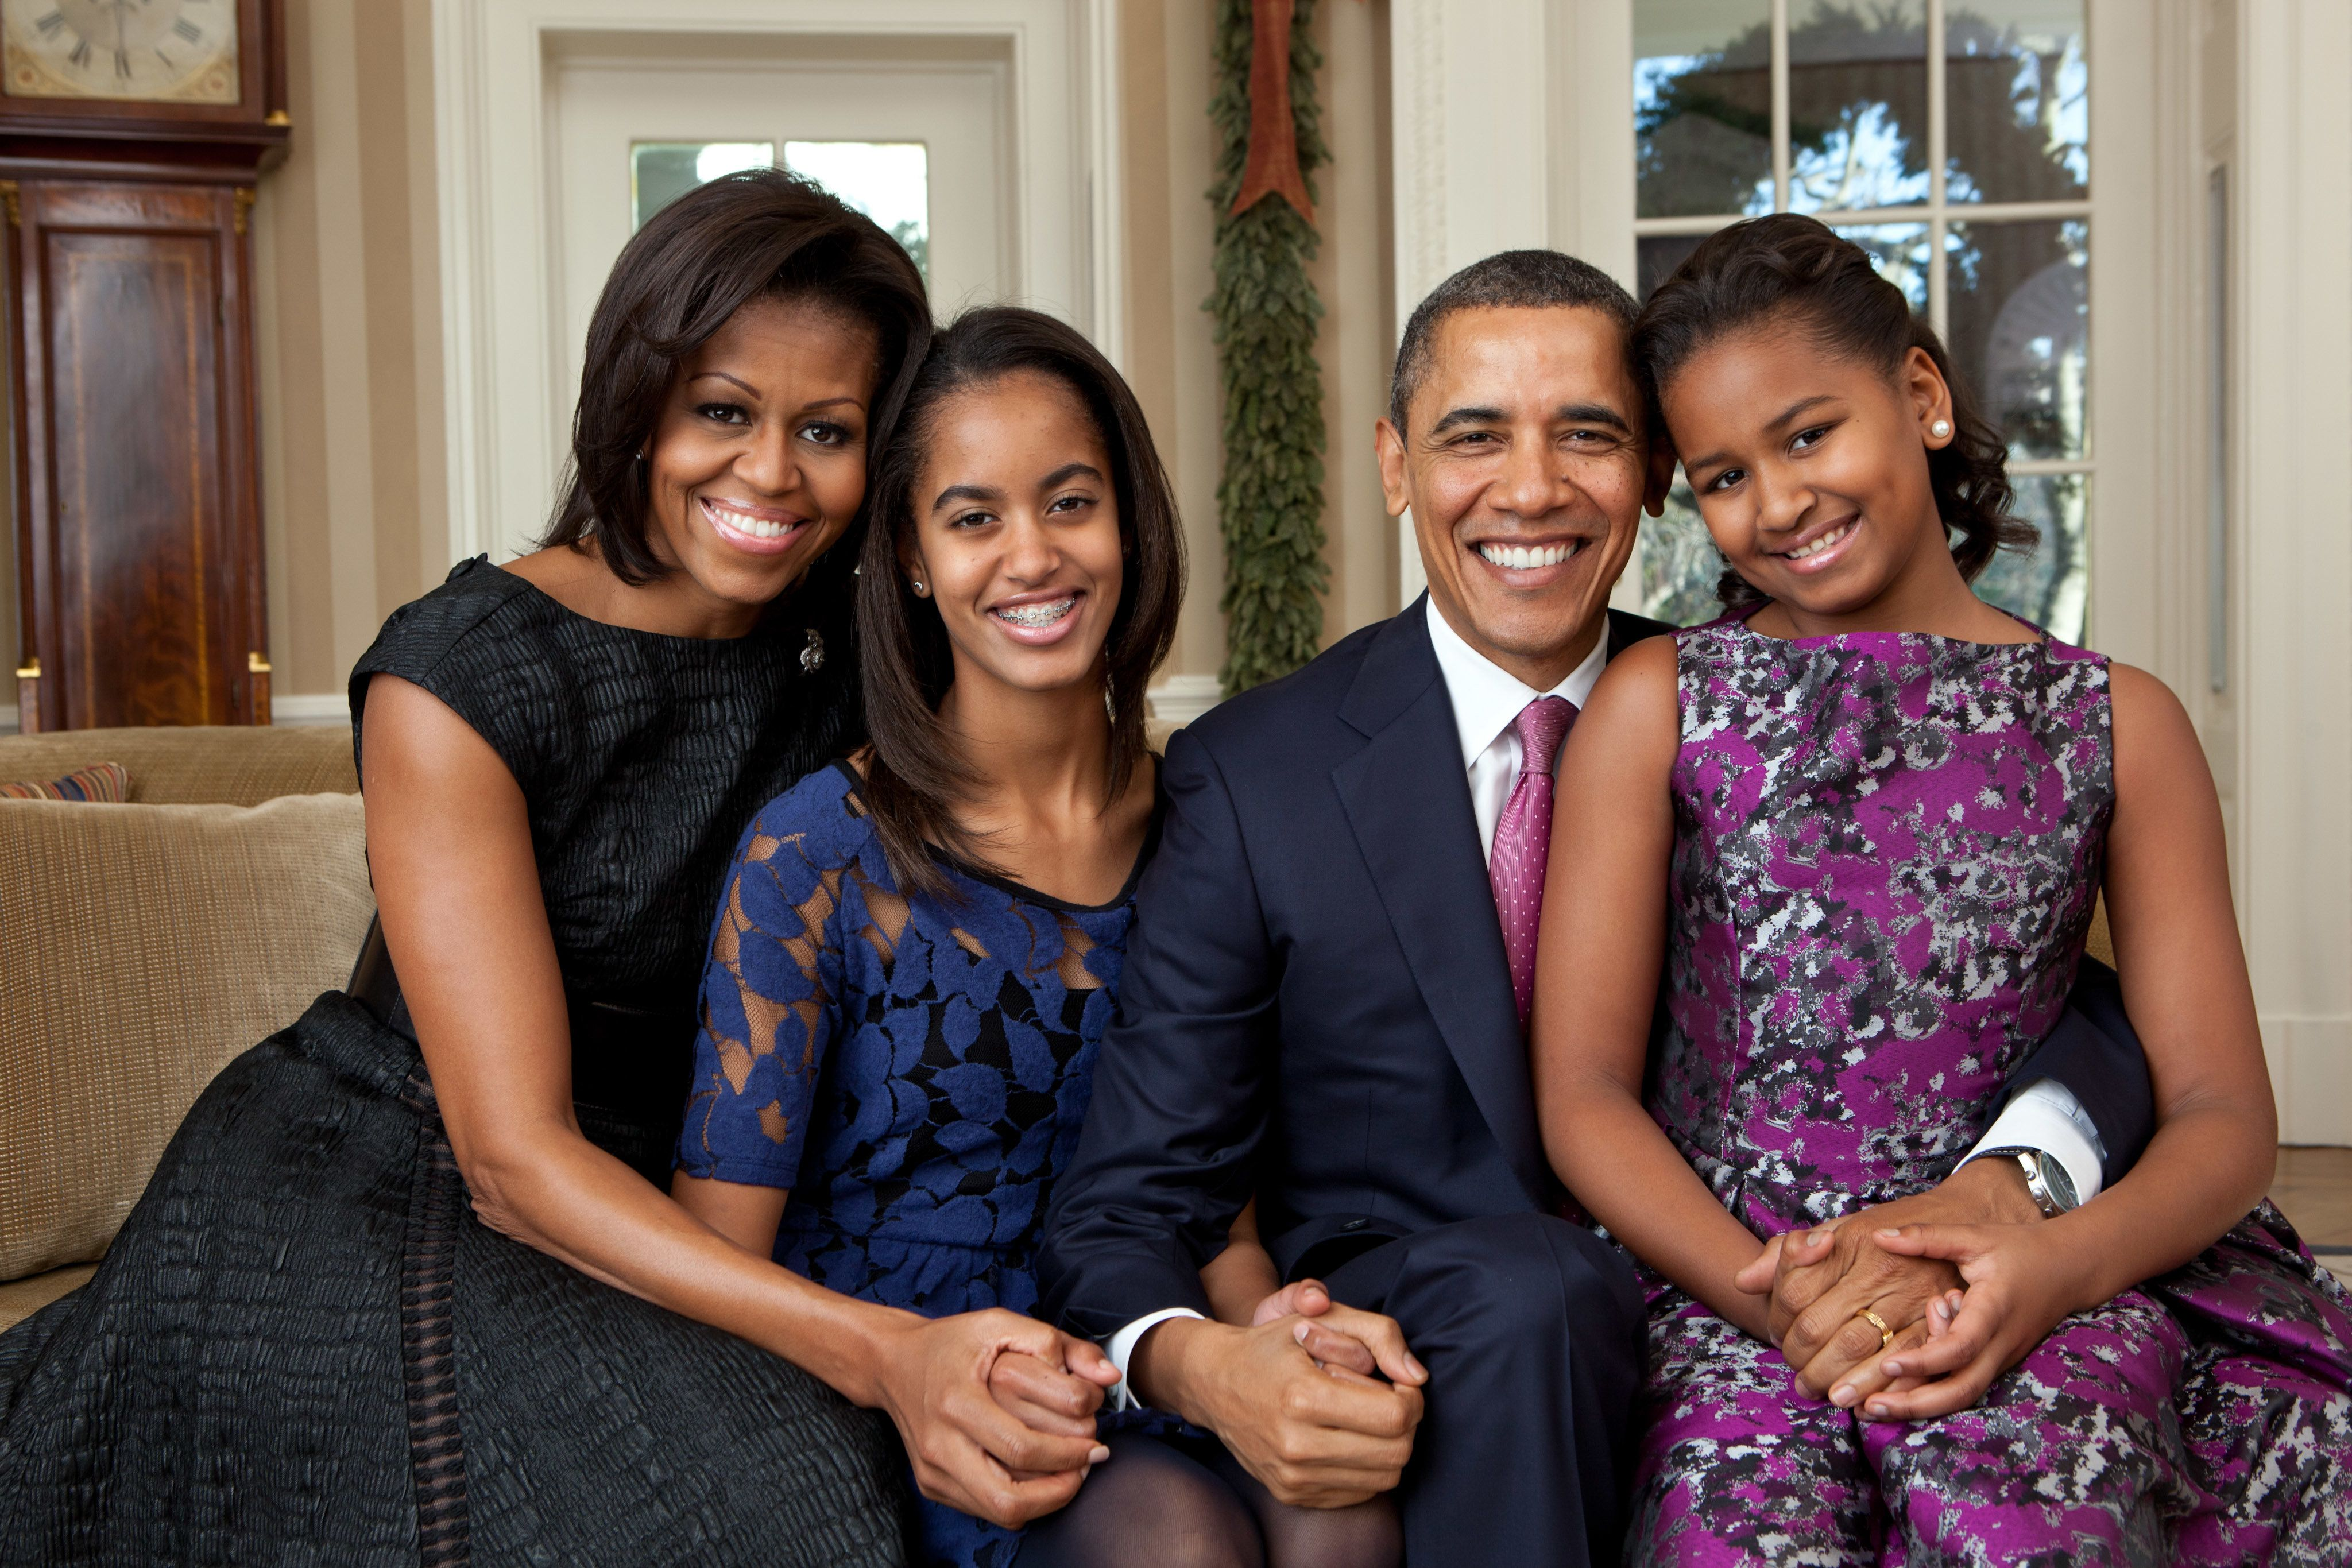 The Obamas pose for an official family portrait in 2011.